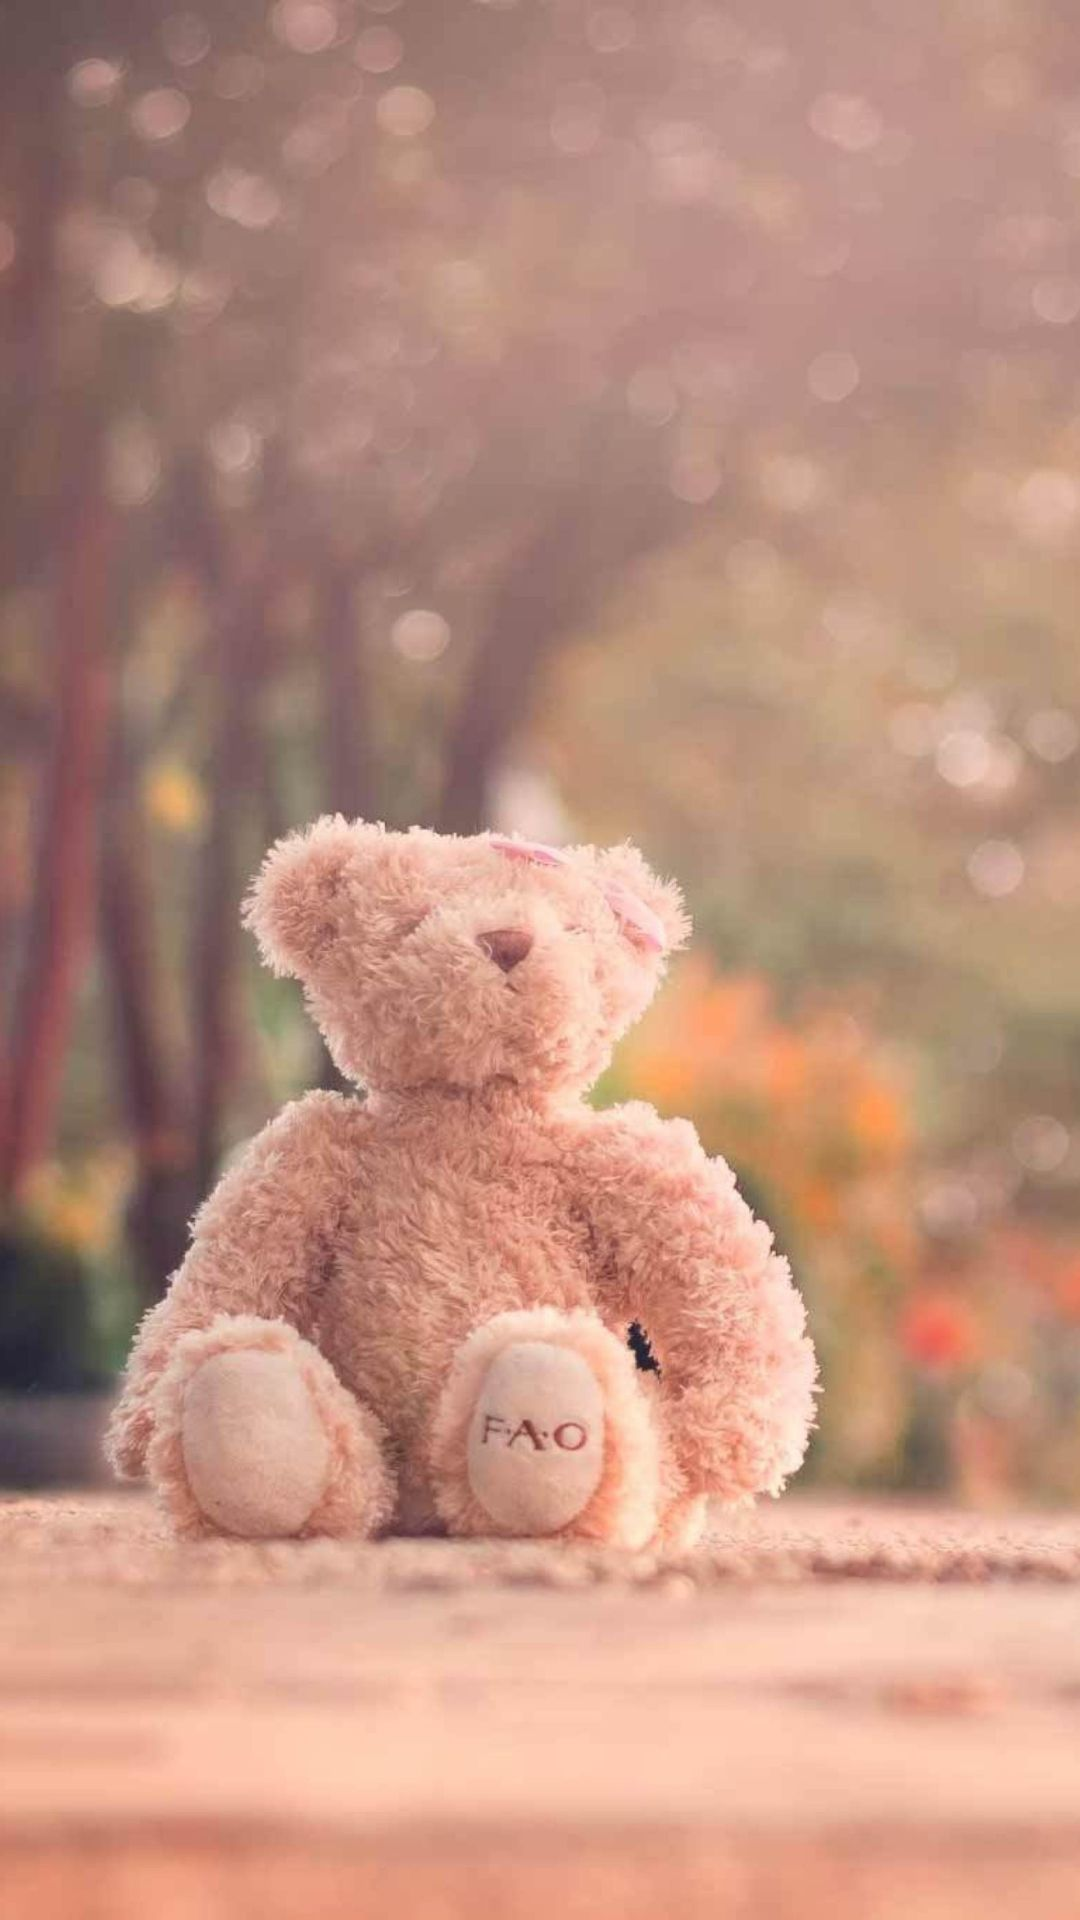 Teddy Bear Left Alone On Road Wallpaper For Iphone Plus